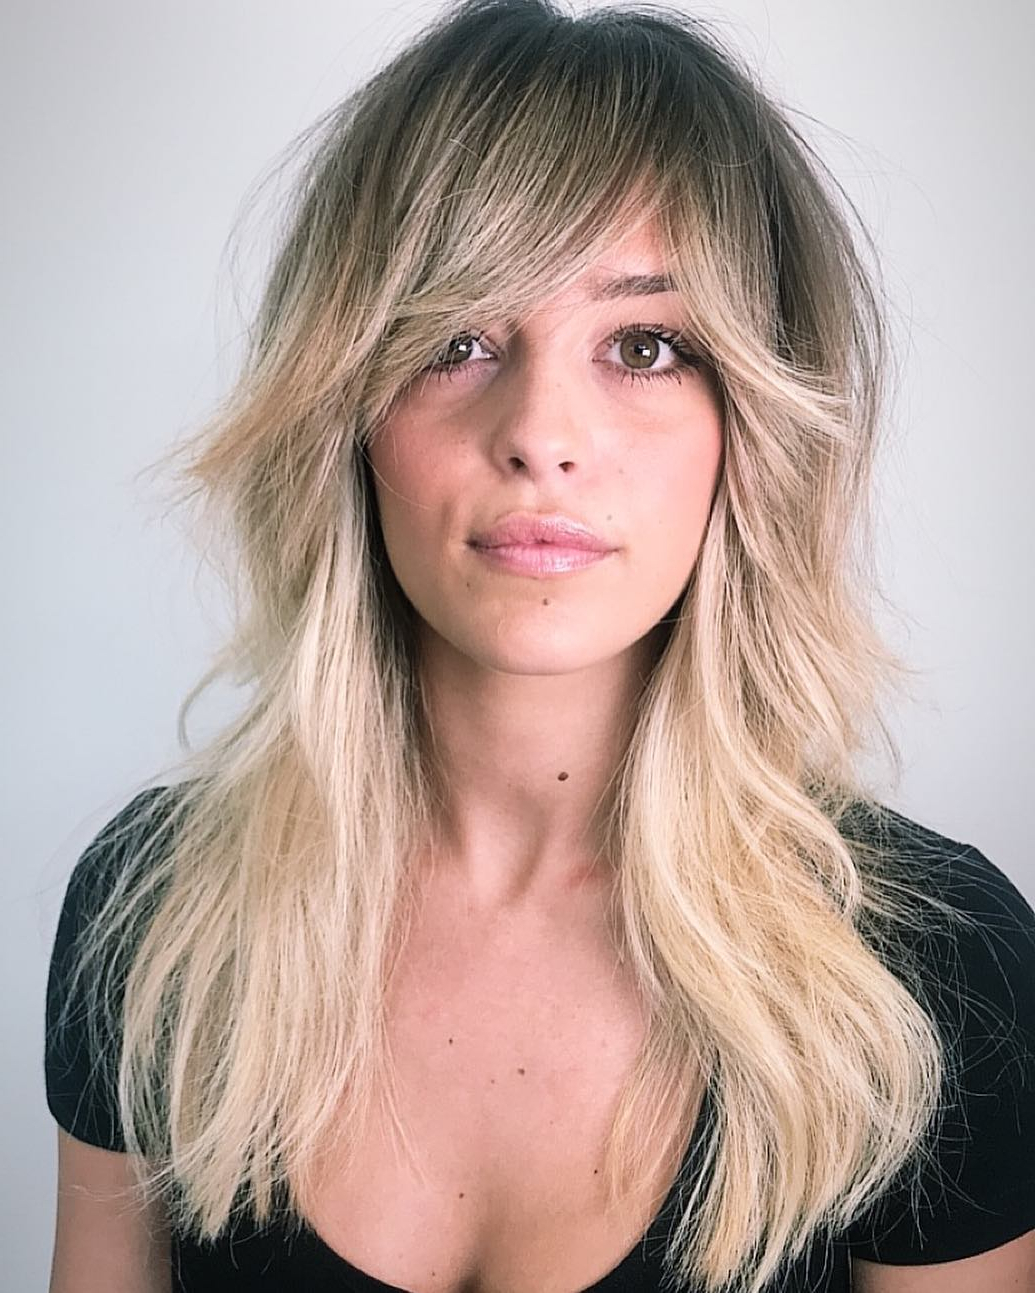 The Most Instagrammable Hairstyles With Bangs In 2019 In Widely Used Feathered Black Shag Haircuts With Side Bangs (View 14 of 20)